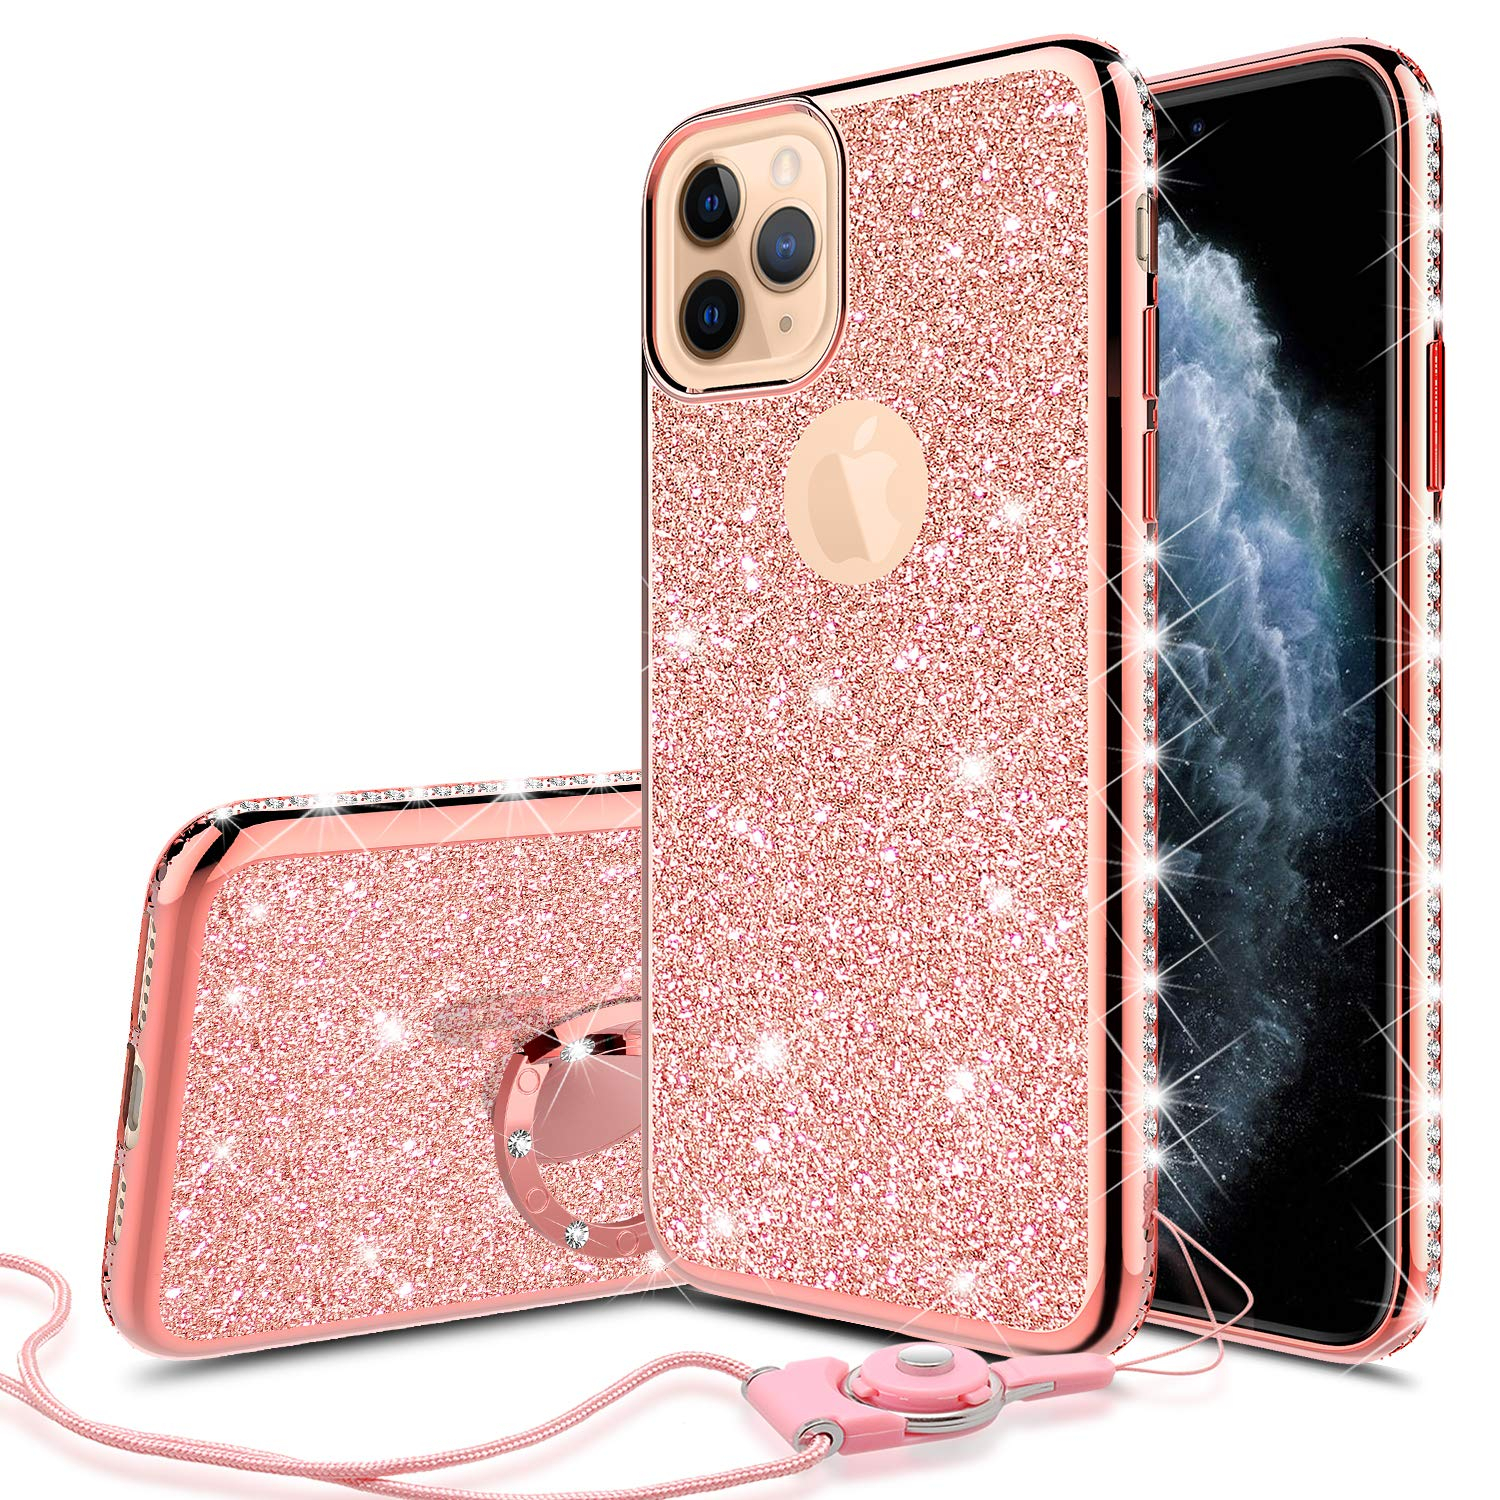 ce40a5 iphone rose gold glitter apple wallpaper